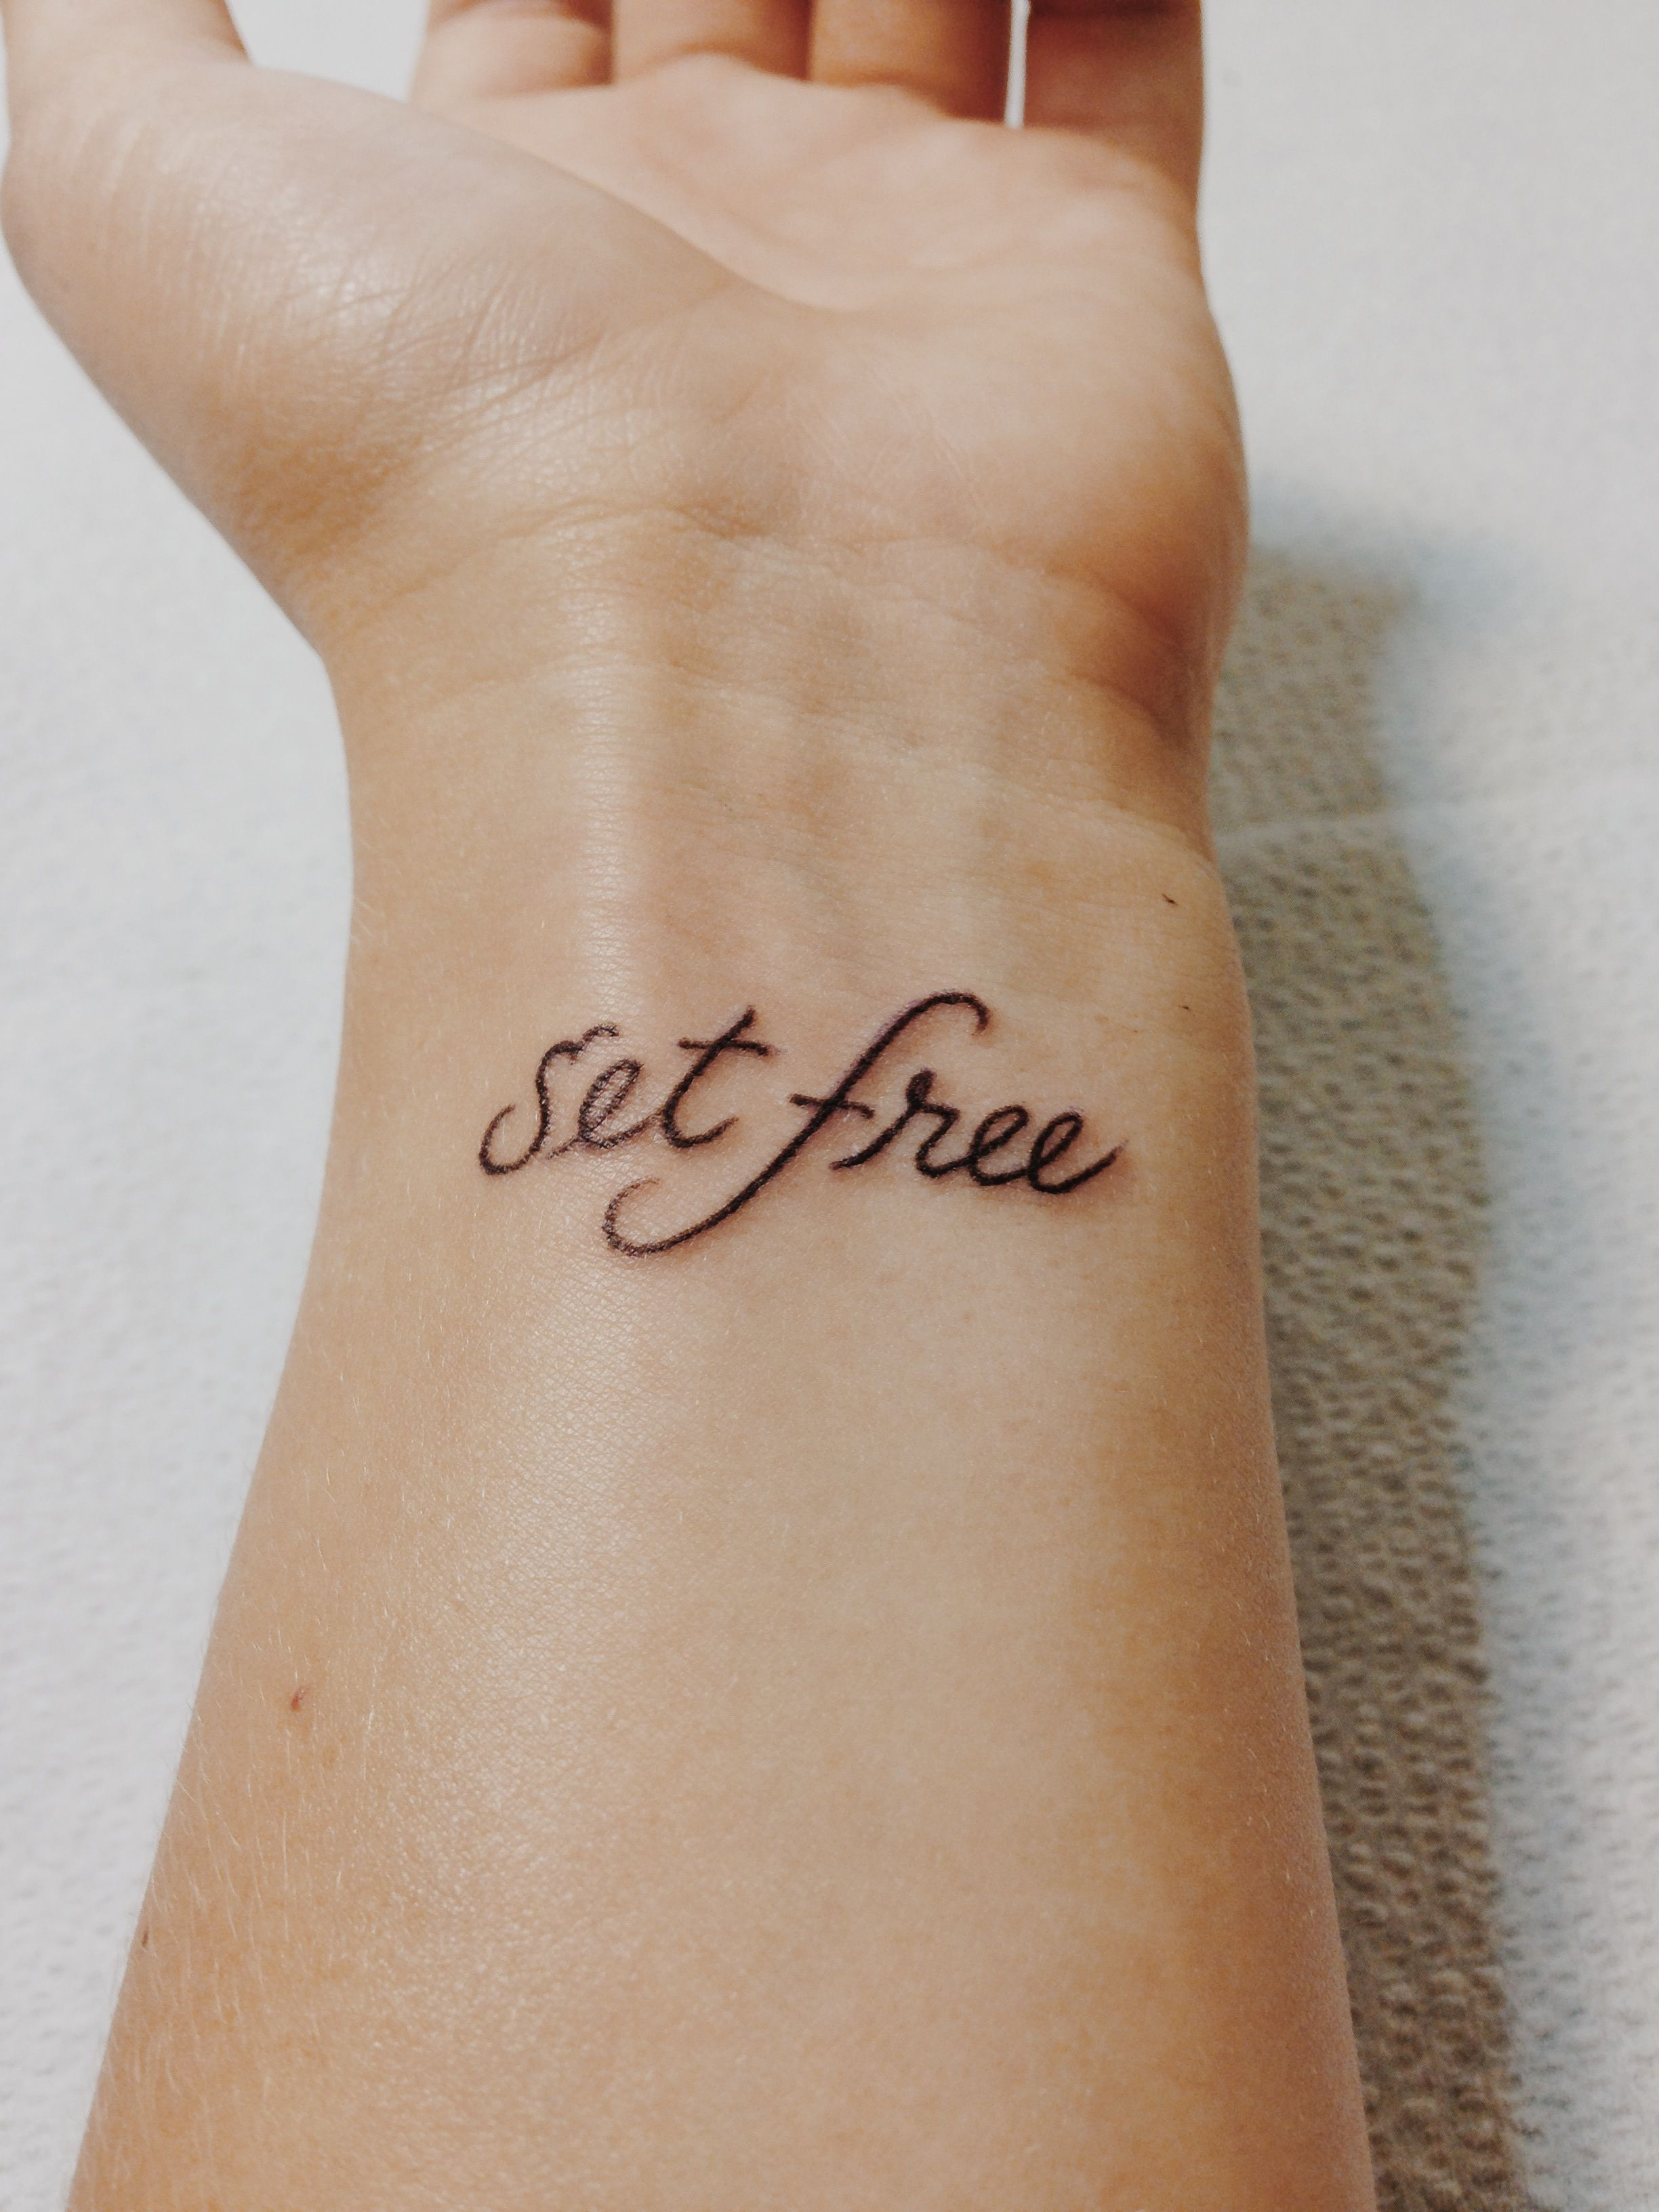 5892829c69c53 It is for freedom that I am set free. Christian Tattoos, Small Tattoos,